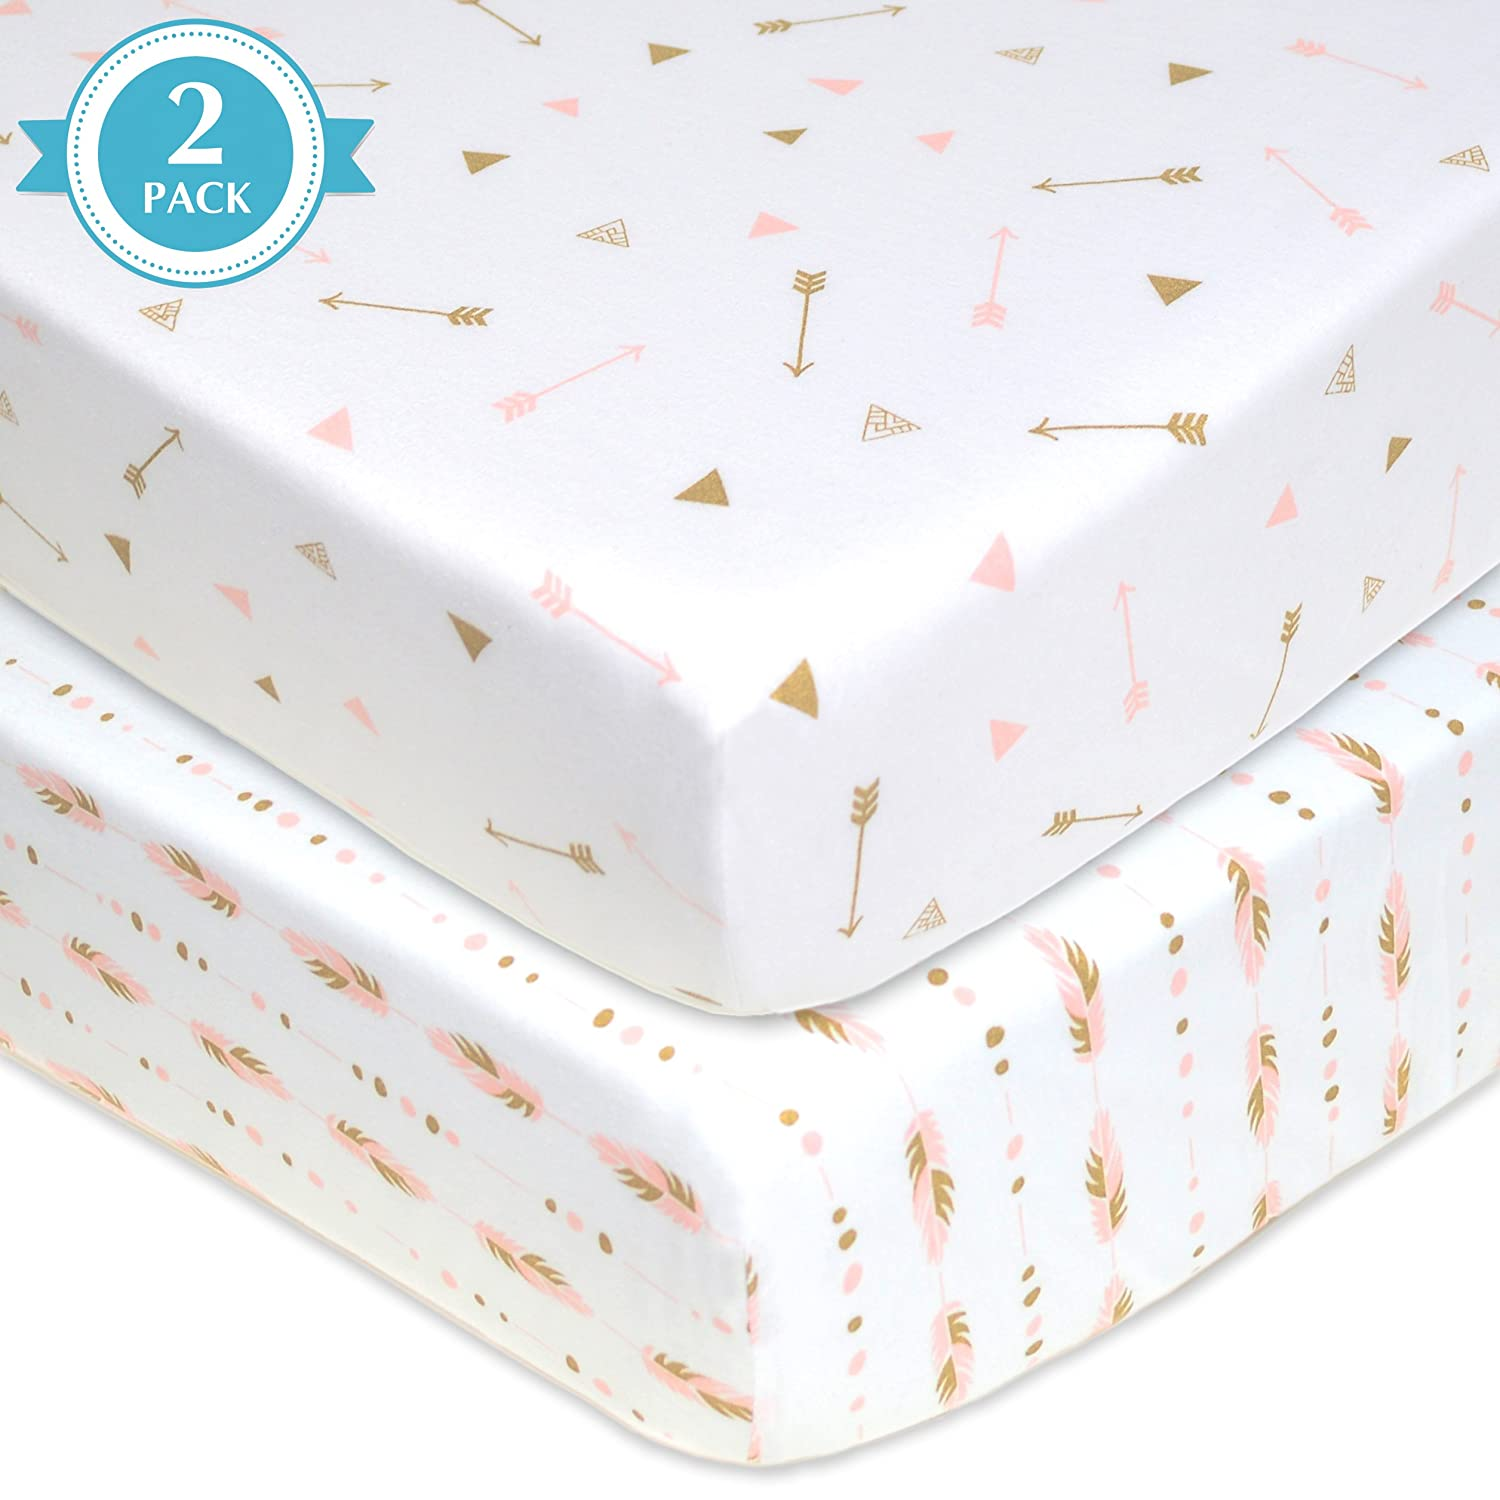 American Baby Company 2 Pack Printed 100% Cotton Jersey Knit Fitted Crib Sheet for Standard Crib and Toddler Mattresses, Sparkle Gold/Pink Feathers/Arrows, for Girls